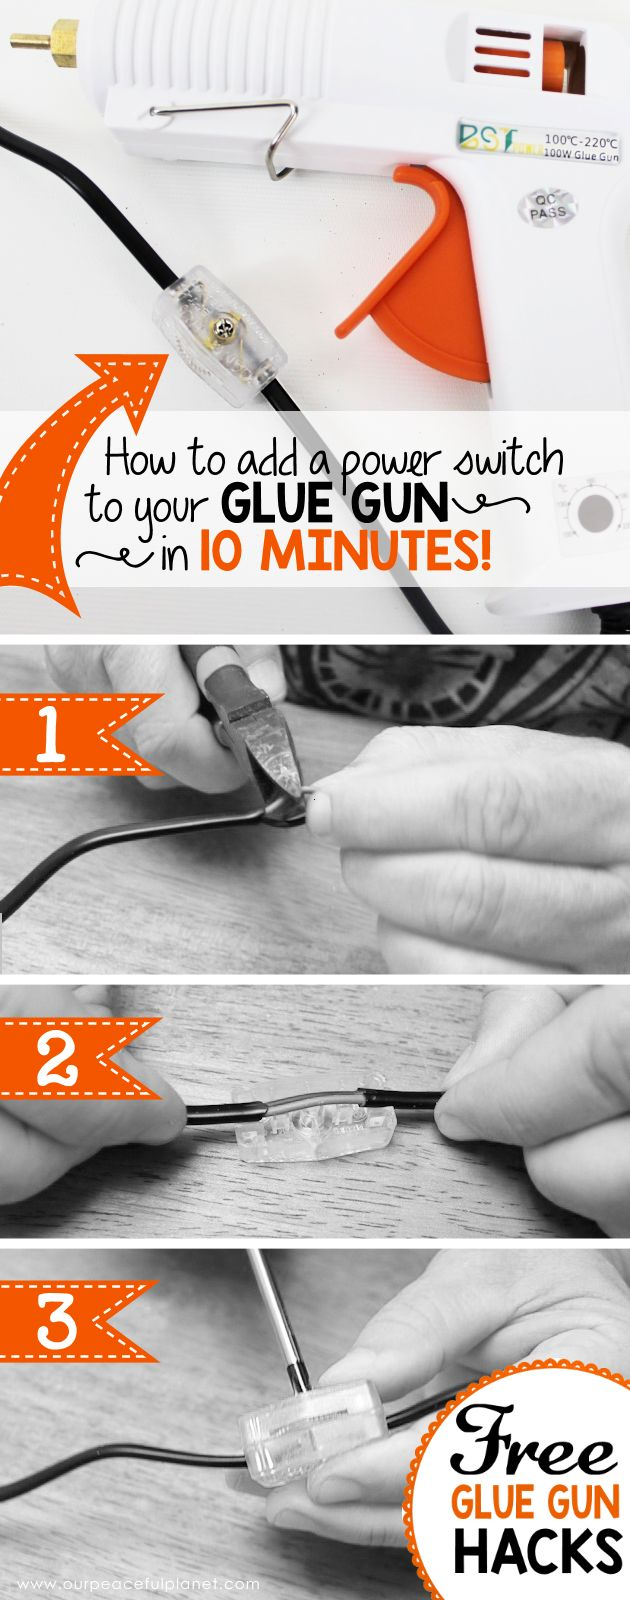 It's really hard to find a glue gun with an on off switch. But its easy to install a $2 switch to the cord in 10 minutes allowing you to keep it plugged in!